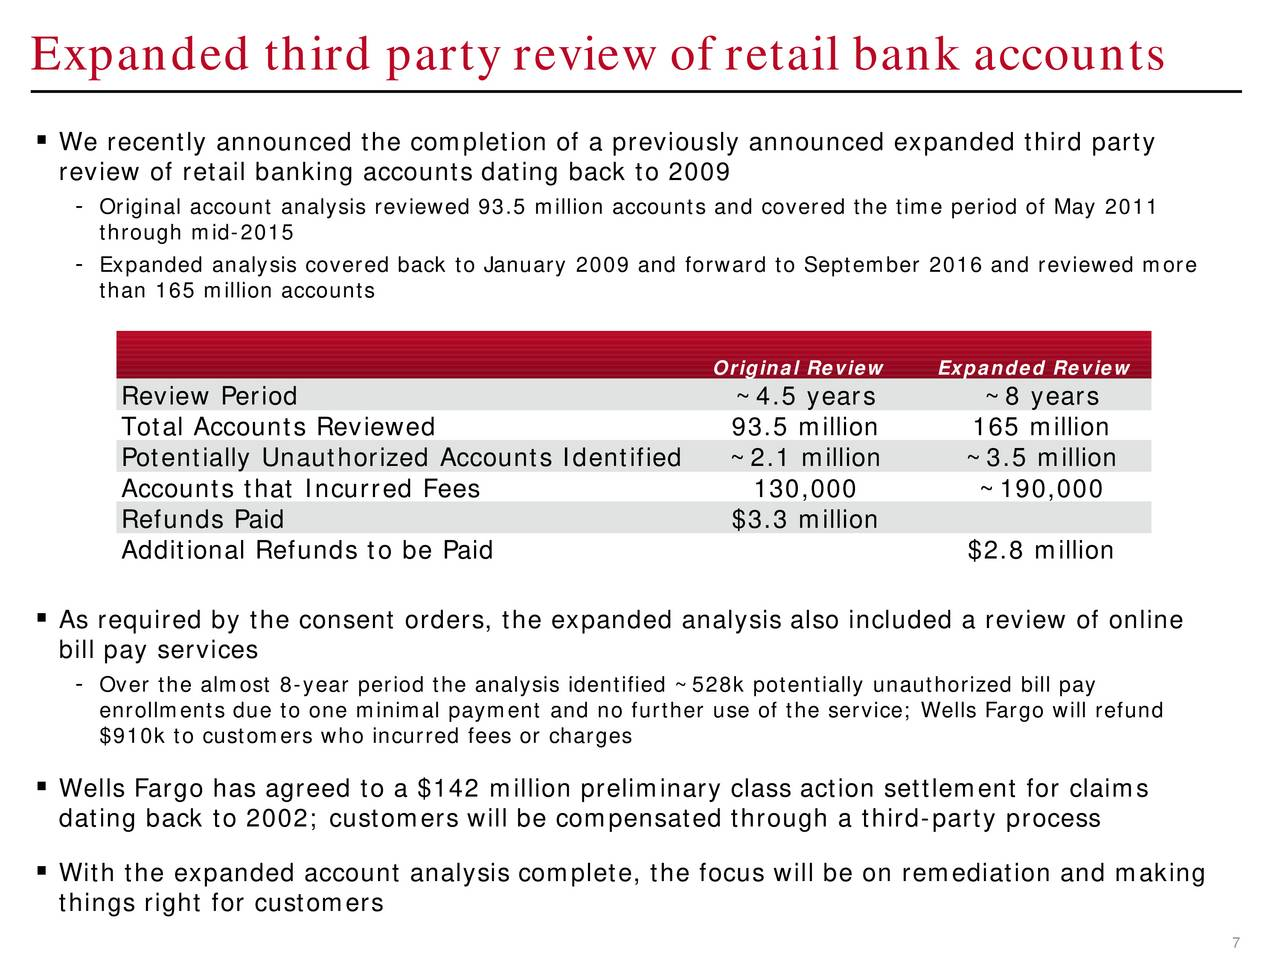 wells fargo online financial services a case study Wells fargo online financial services (b), spanish version is a harvard business (hbr) case study on finance & accounting , fern fort university provides hbr case study assignment help for just $11 our case solution is based on case study method expertise & our global insights.